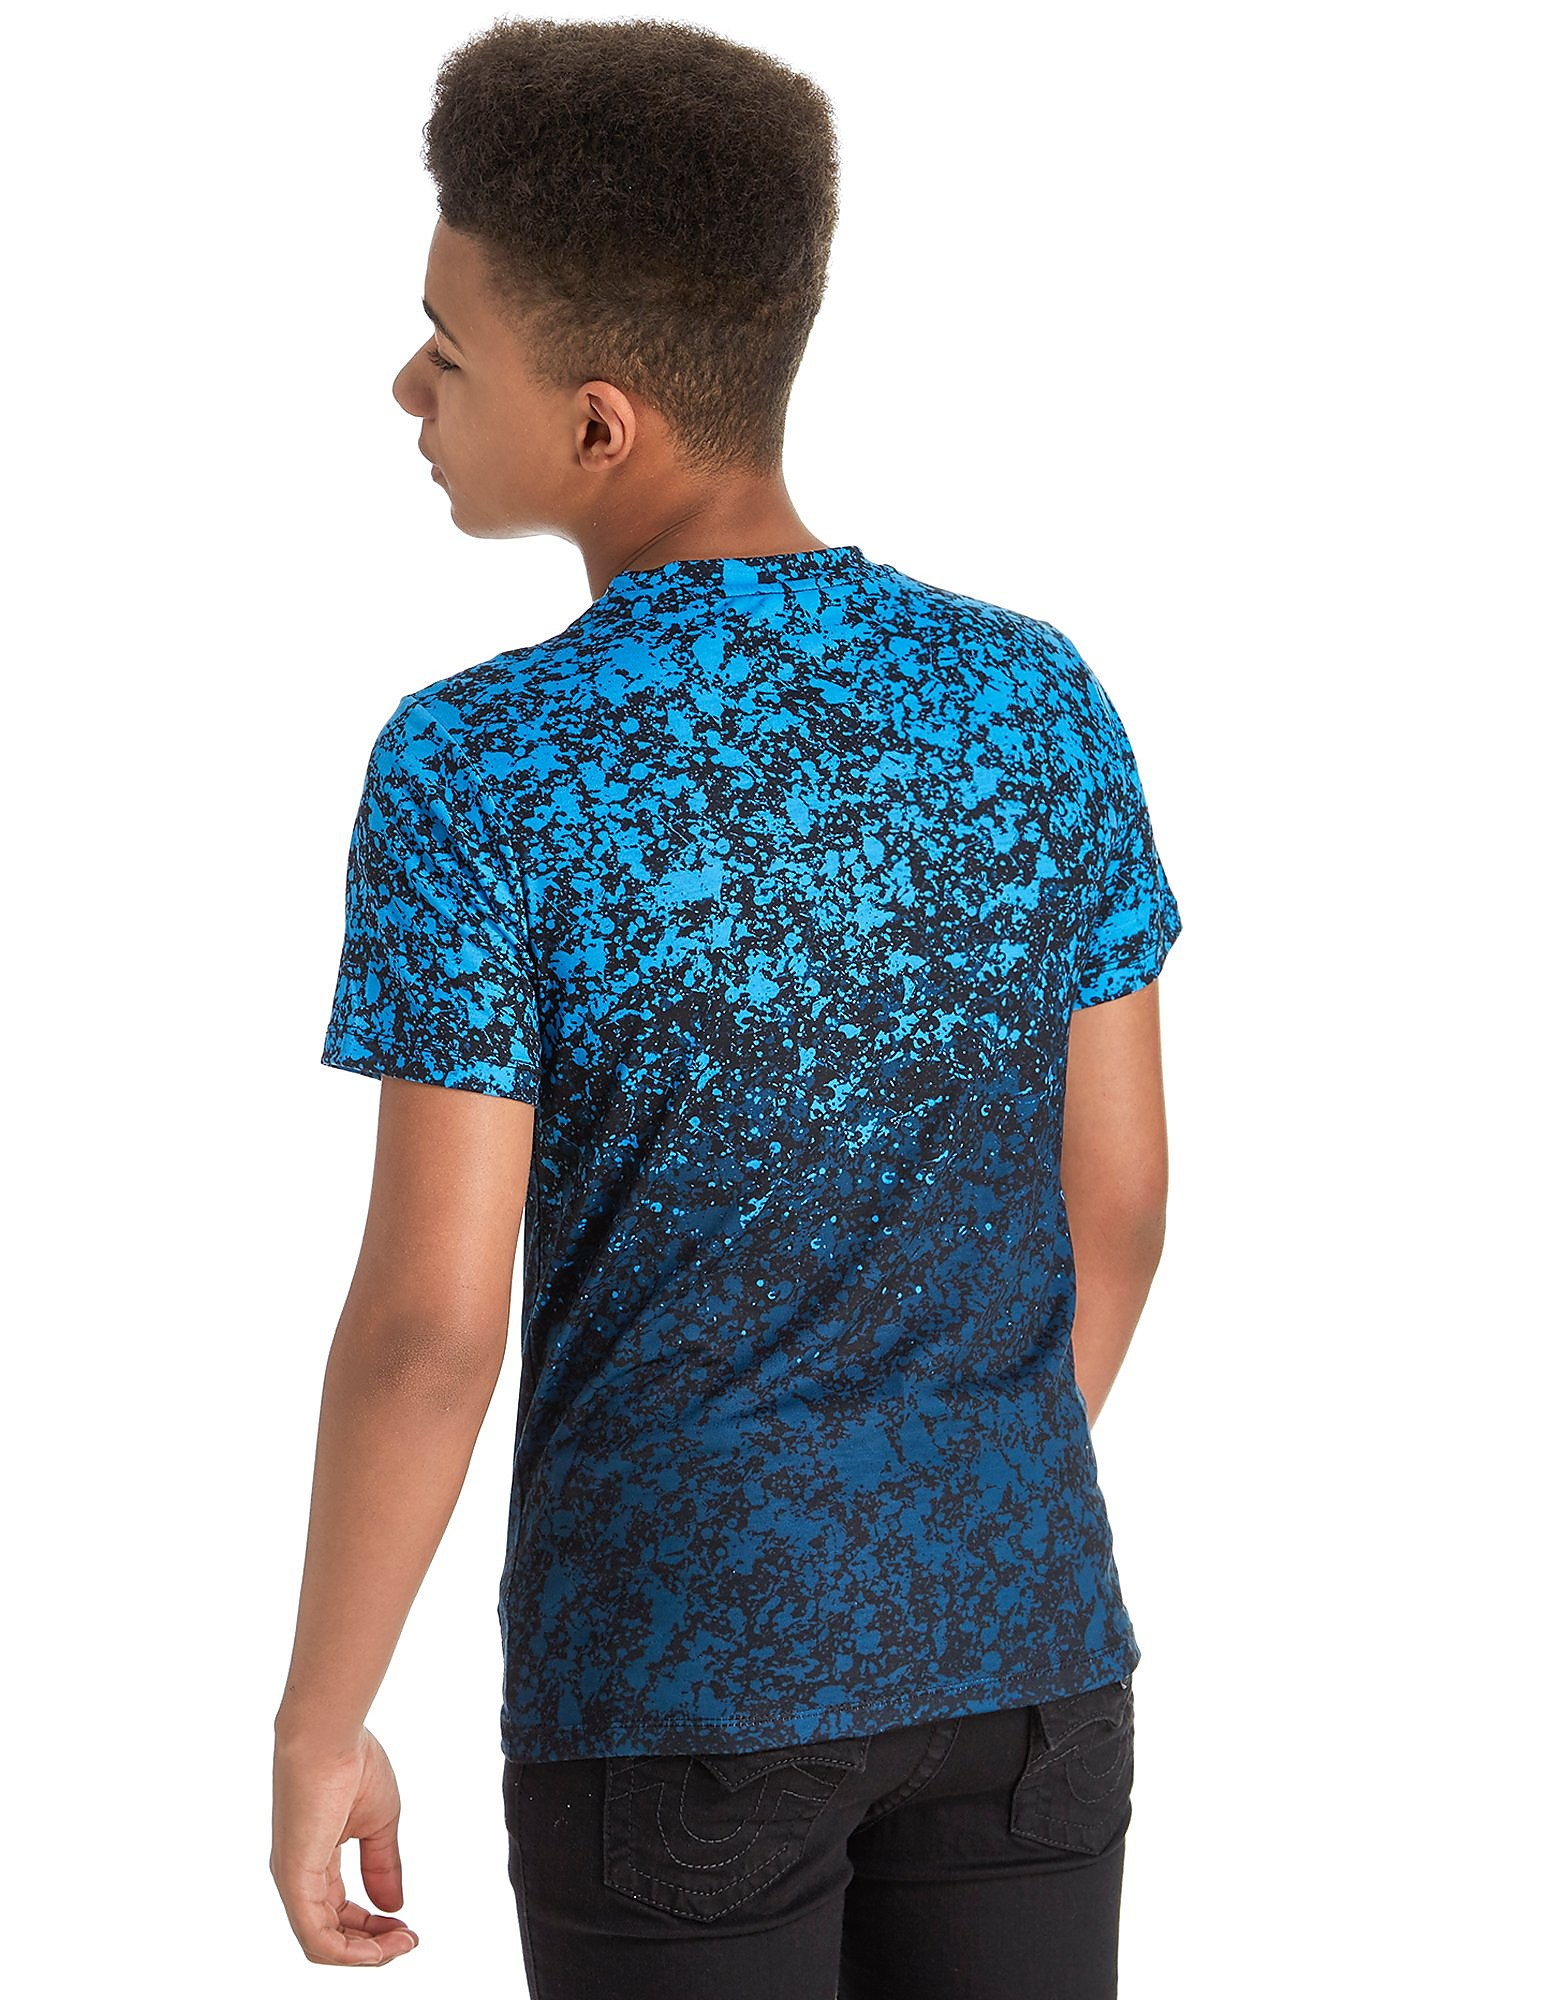 Hype Blue Splats T-Shirt Junior